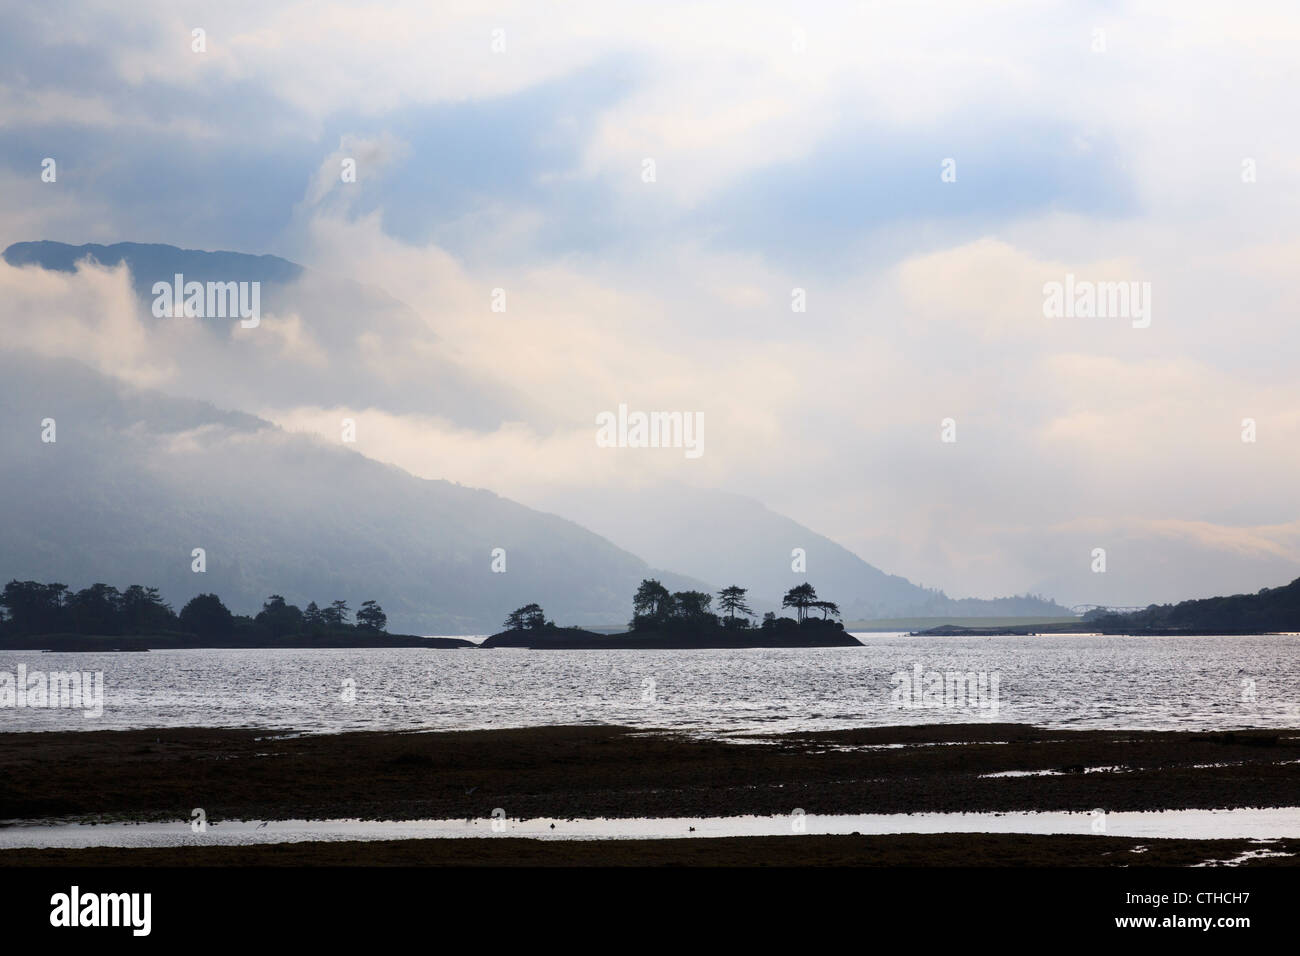 Improving weather scene with low cloud breaking up over Loch Leven and mountains in evening from Glencoe Highland - Stock Image